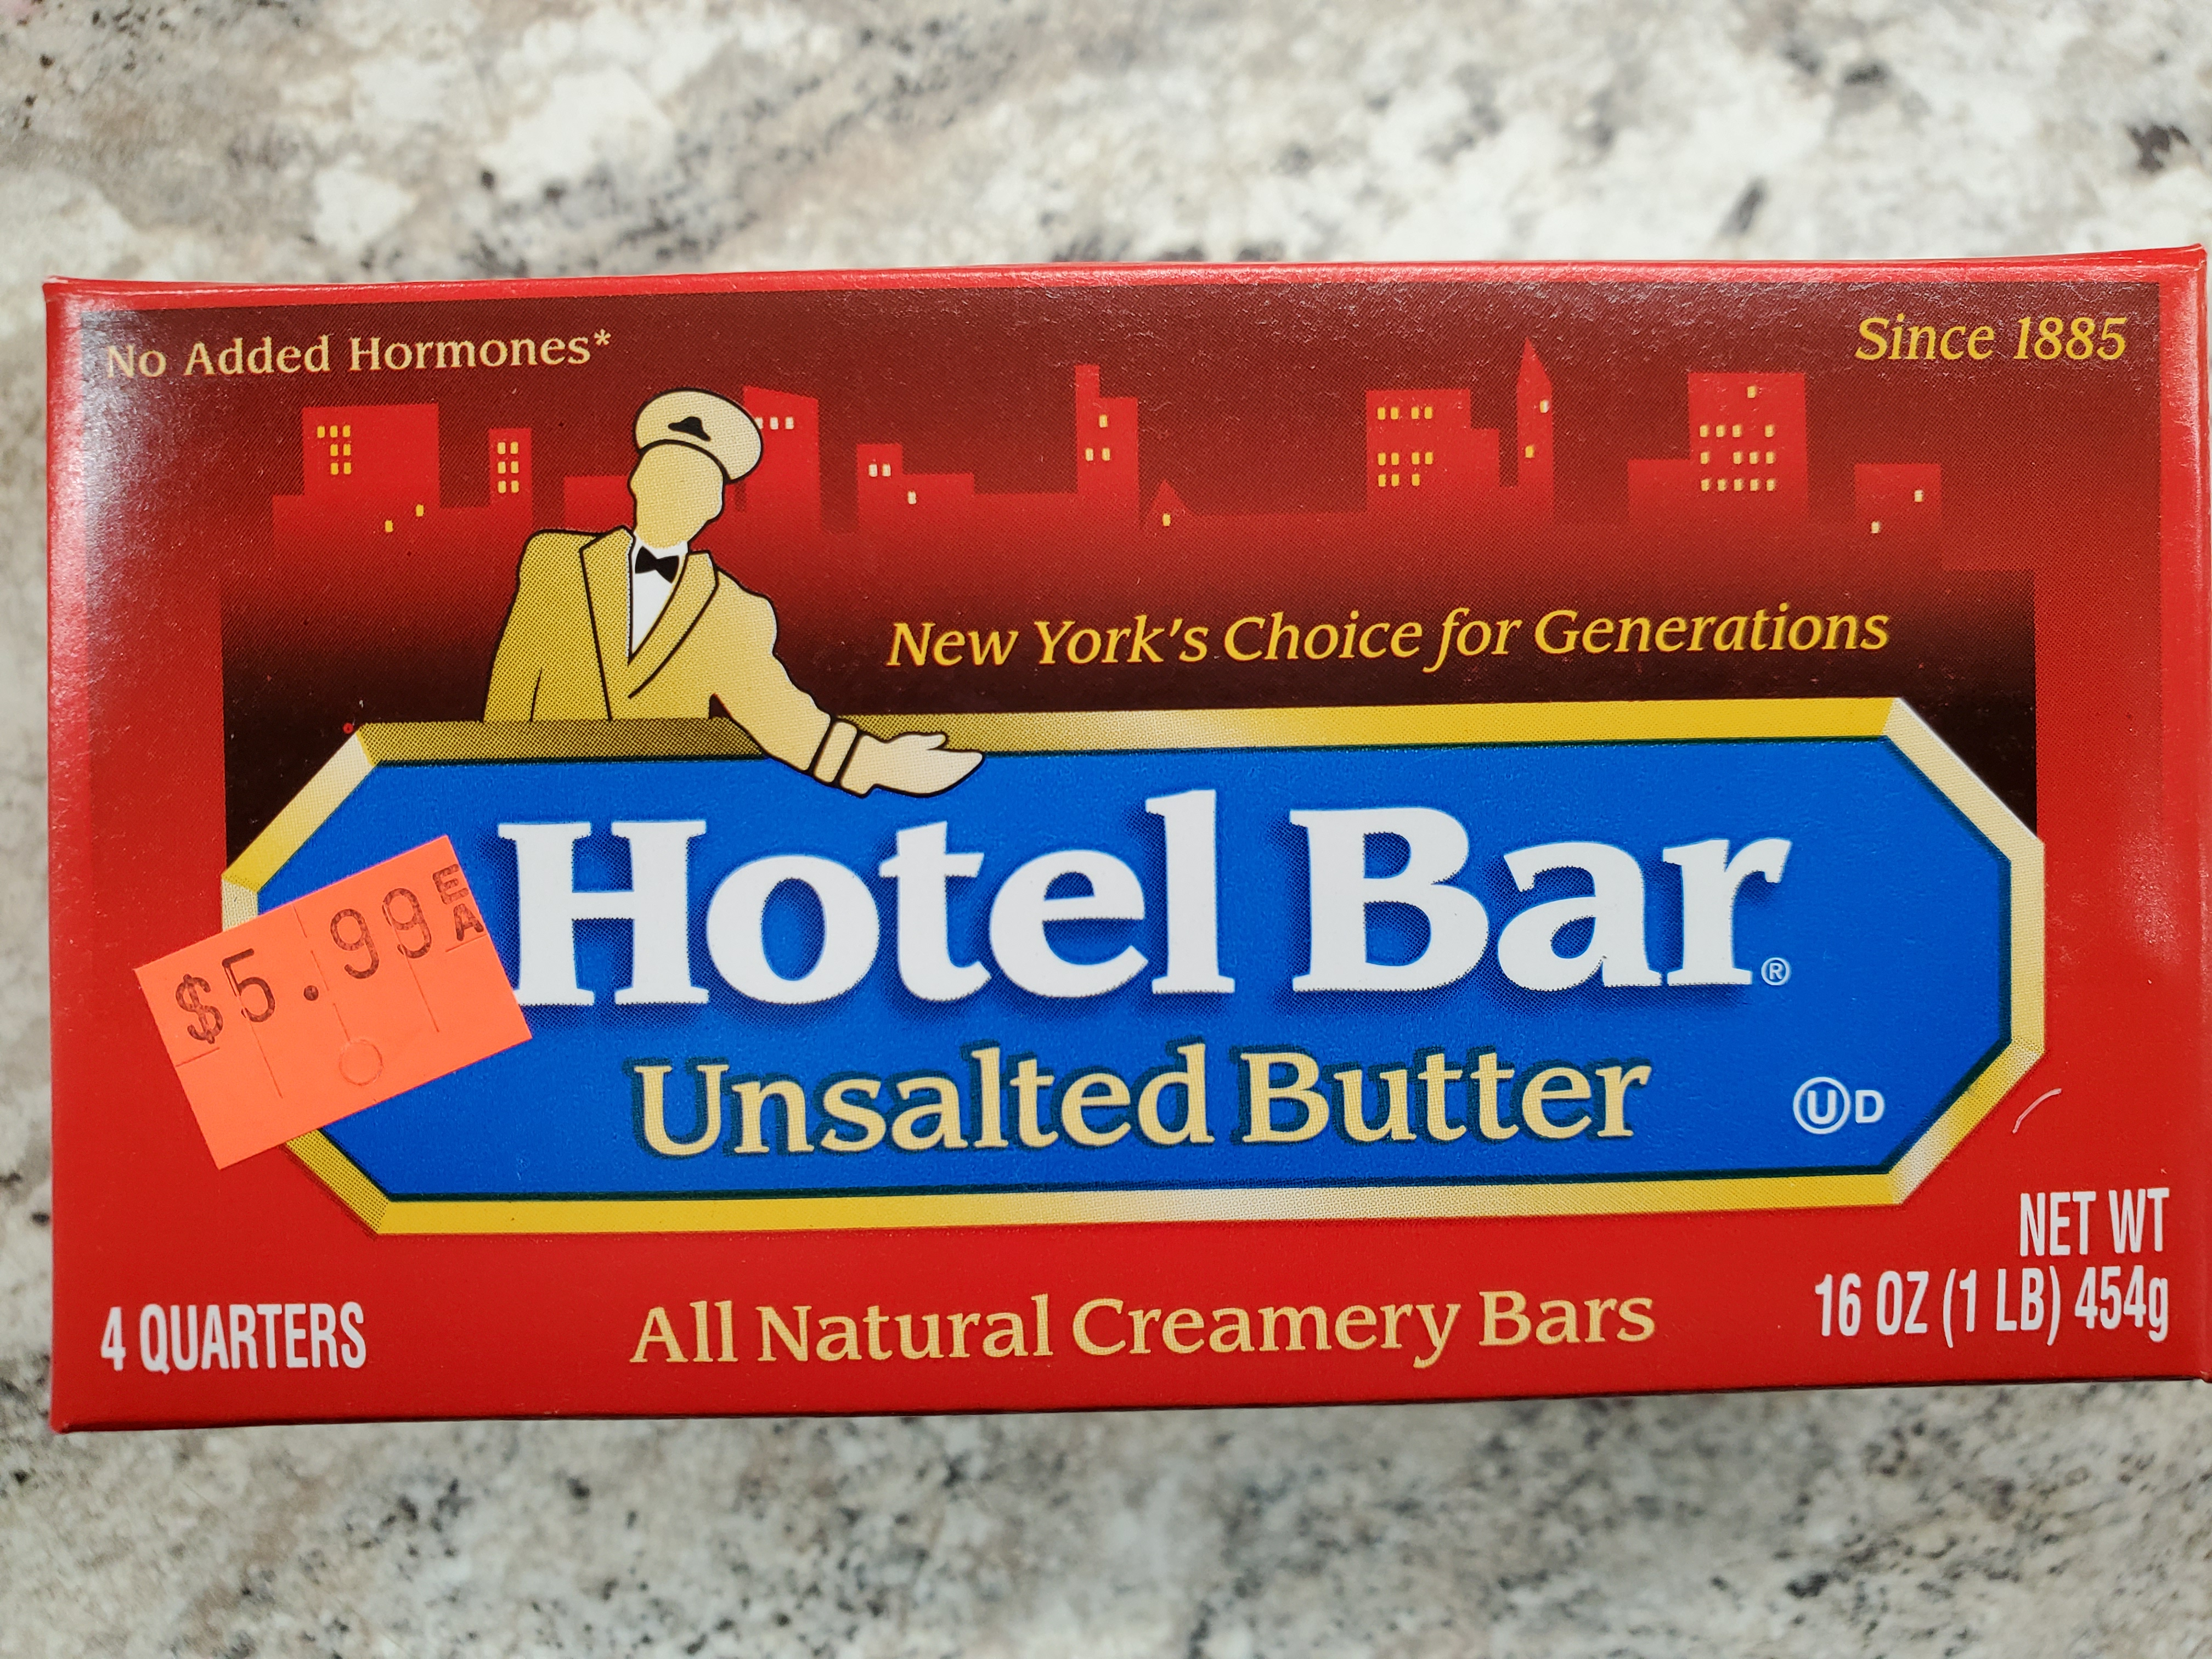 HOTEL BAR UNSALTED BUTTER